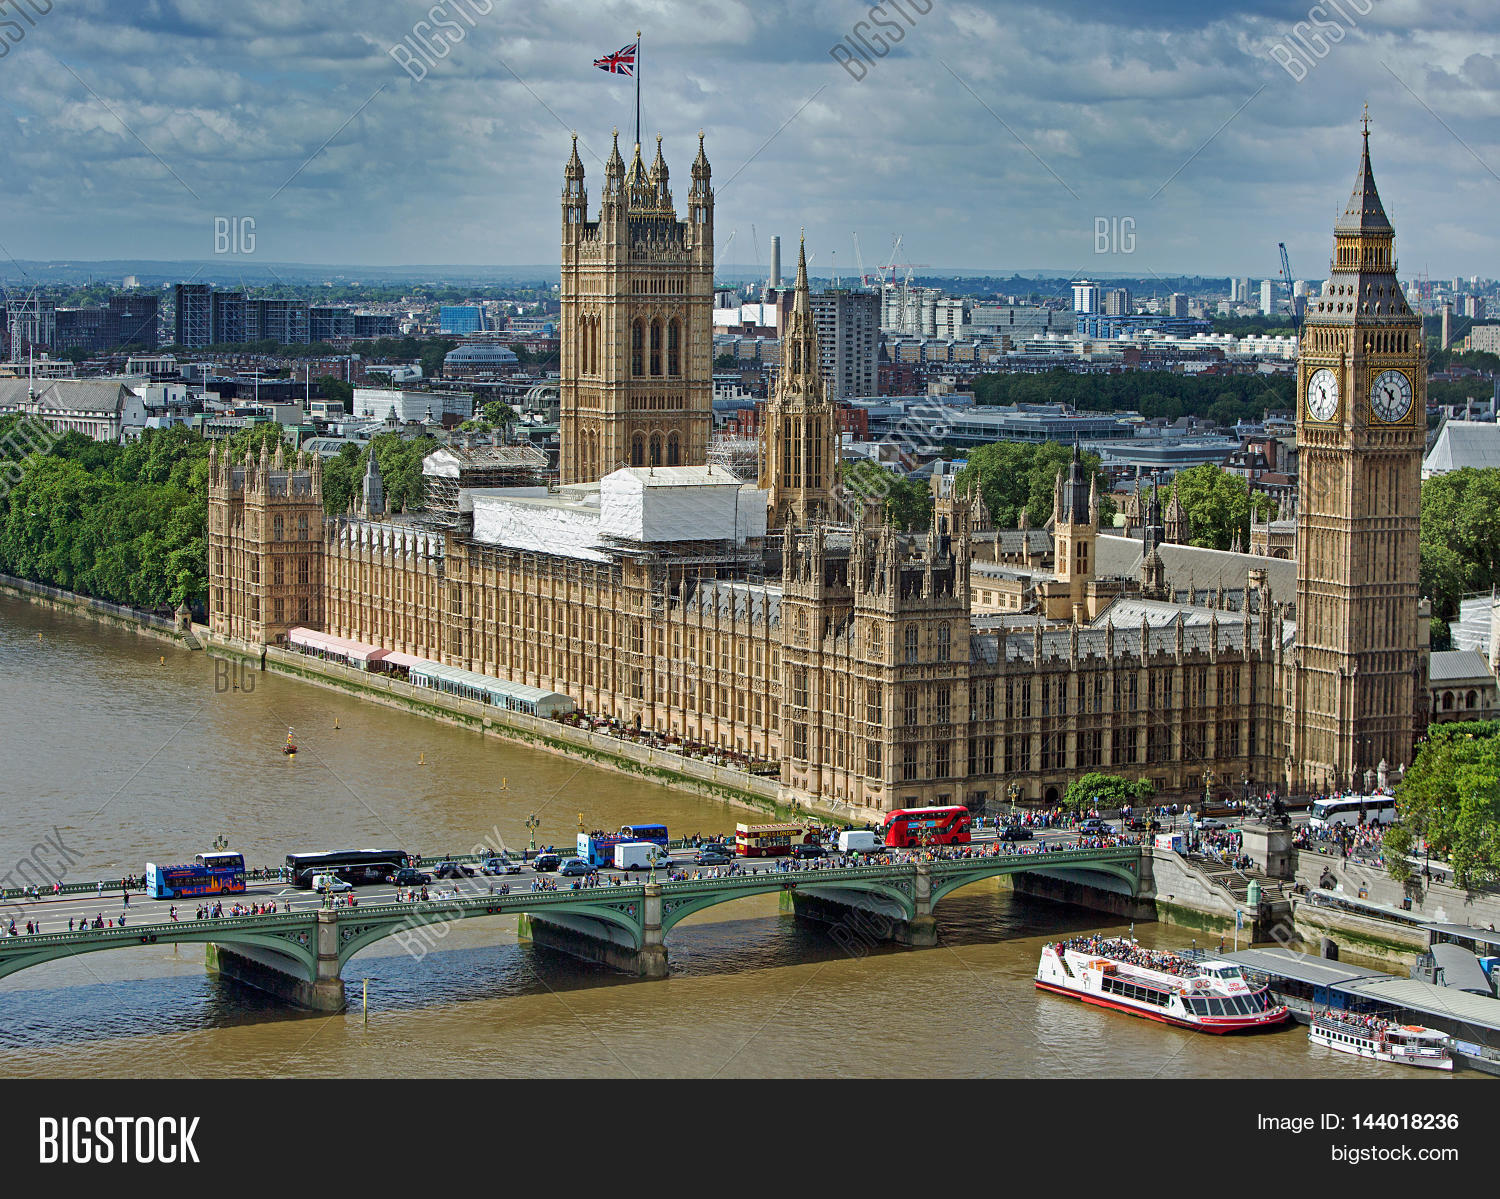 Birdseye View Of London Skyline With Houses Parliament And Ben Along The River Thames